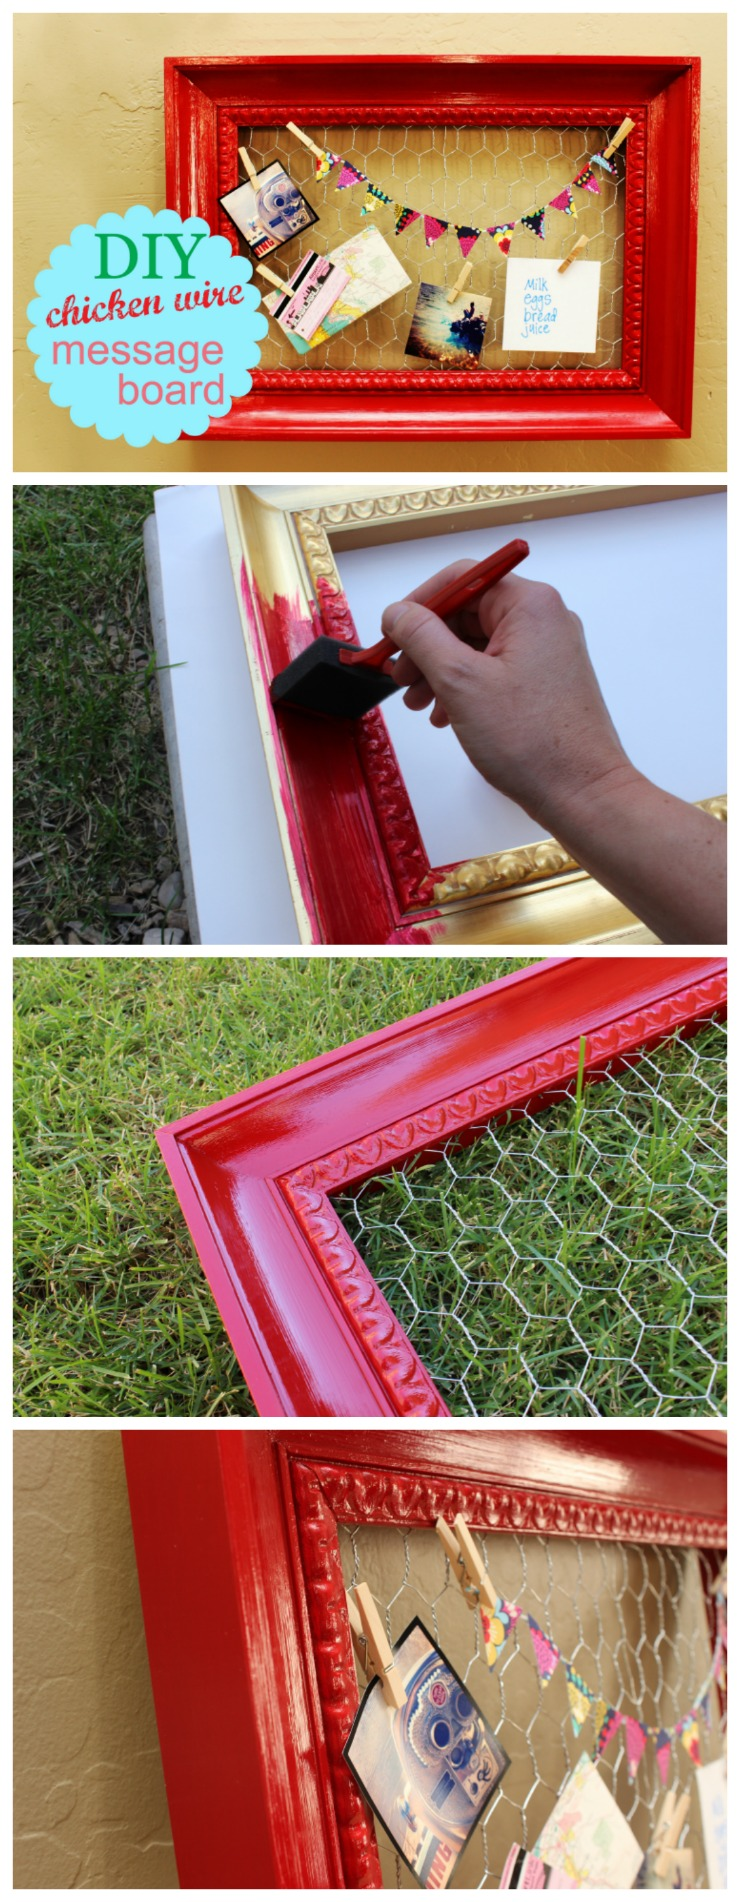 This cute, DIY chicken wire message board is a great way to stay organized and display pictures and other mementoes.